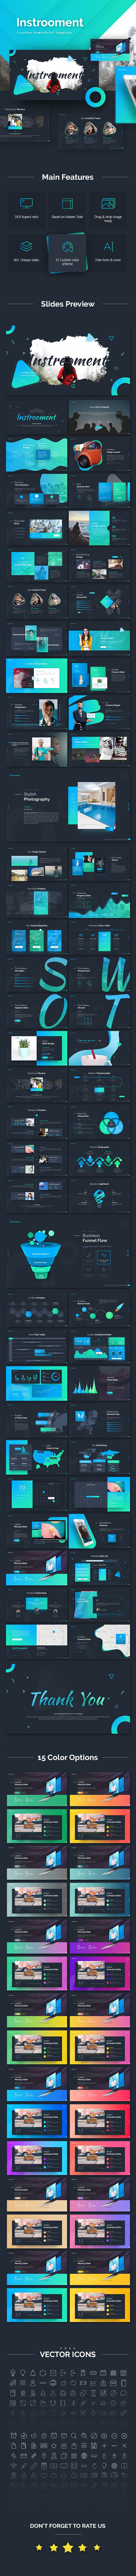 Instrooment Creative PowerPoint Template — Powerpoint PPTX #infographics #entrepreneur • Available here ➝ https://graphicriver.net/item/instrooment-creative-powerpoint-template/21055619?ref=pxcr